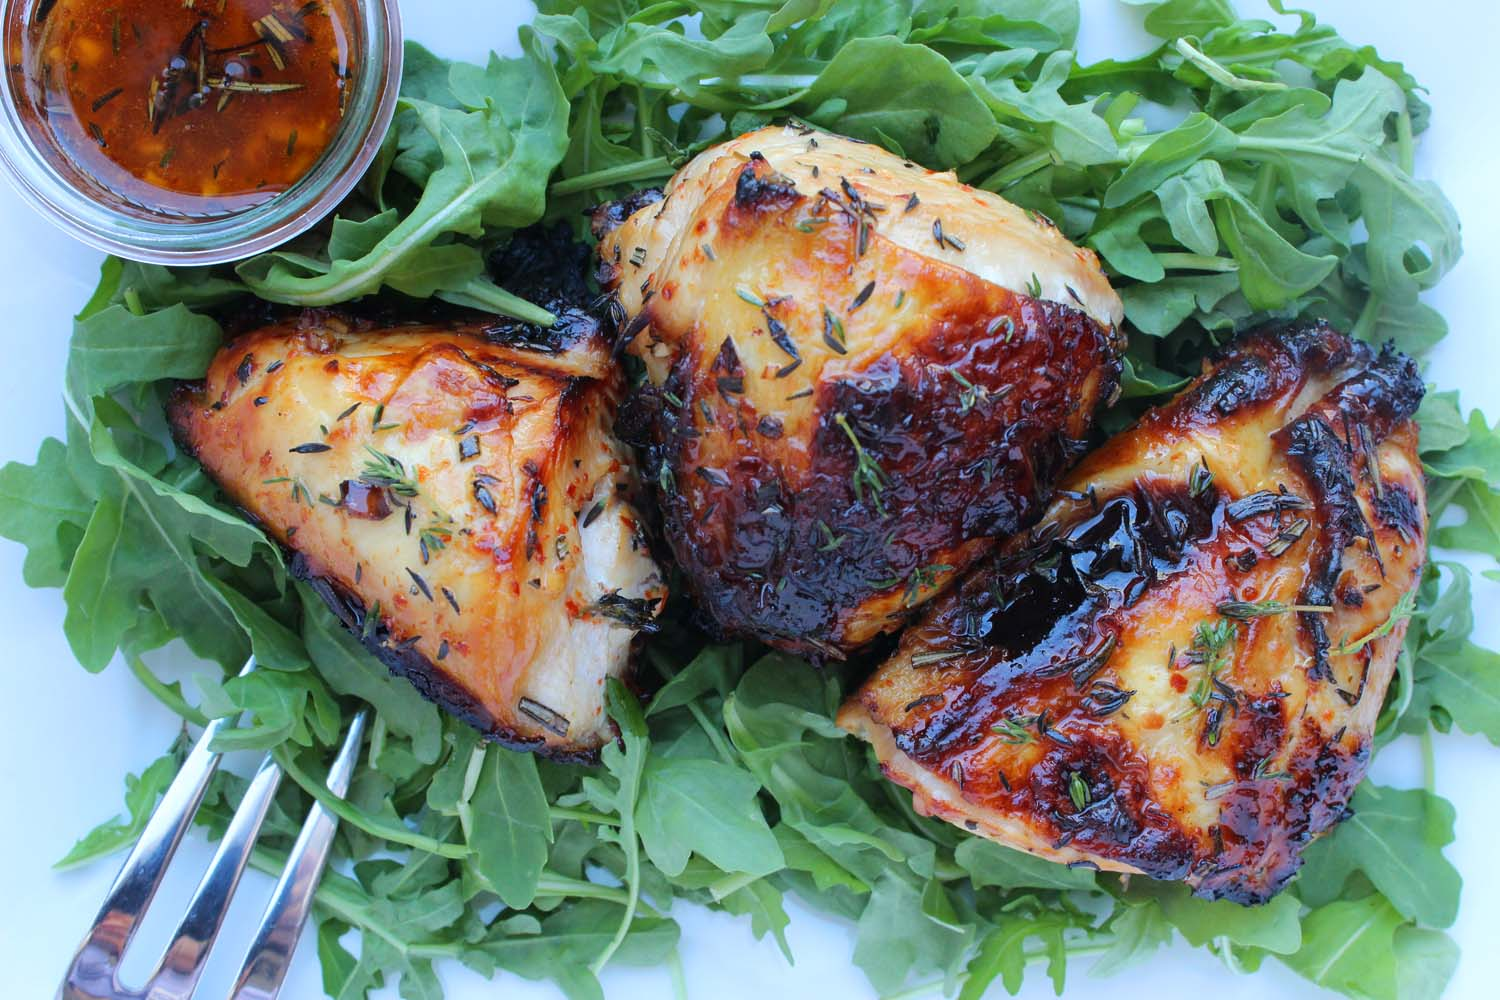 Roasted Chicken with Honey & Aleppo Pepper   | Image:   Laura Messersmith